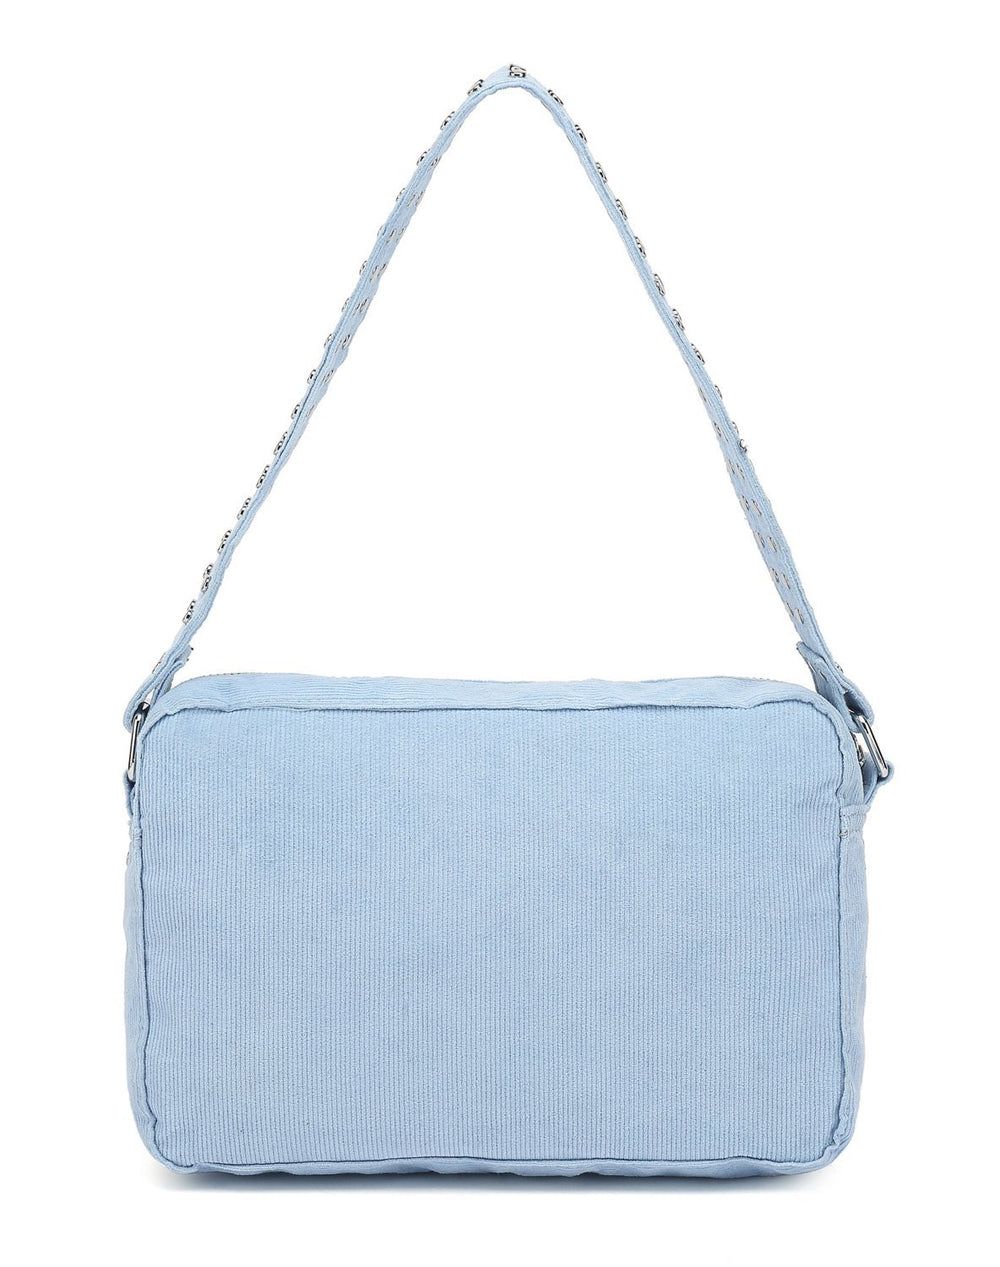 Noella Celina crossover bag light blue corduroy - Online-Mode